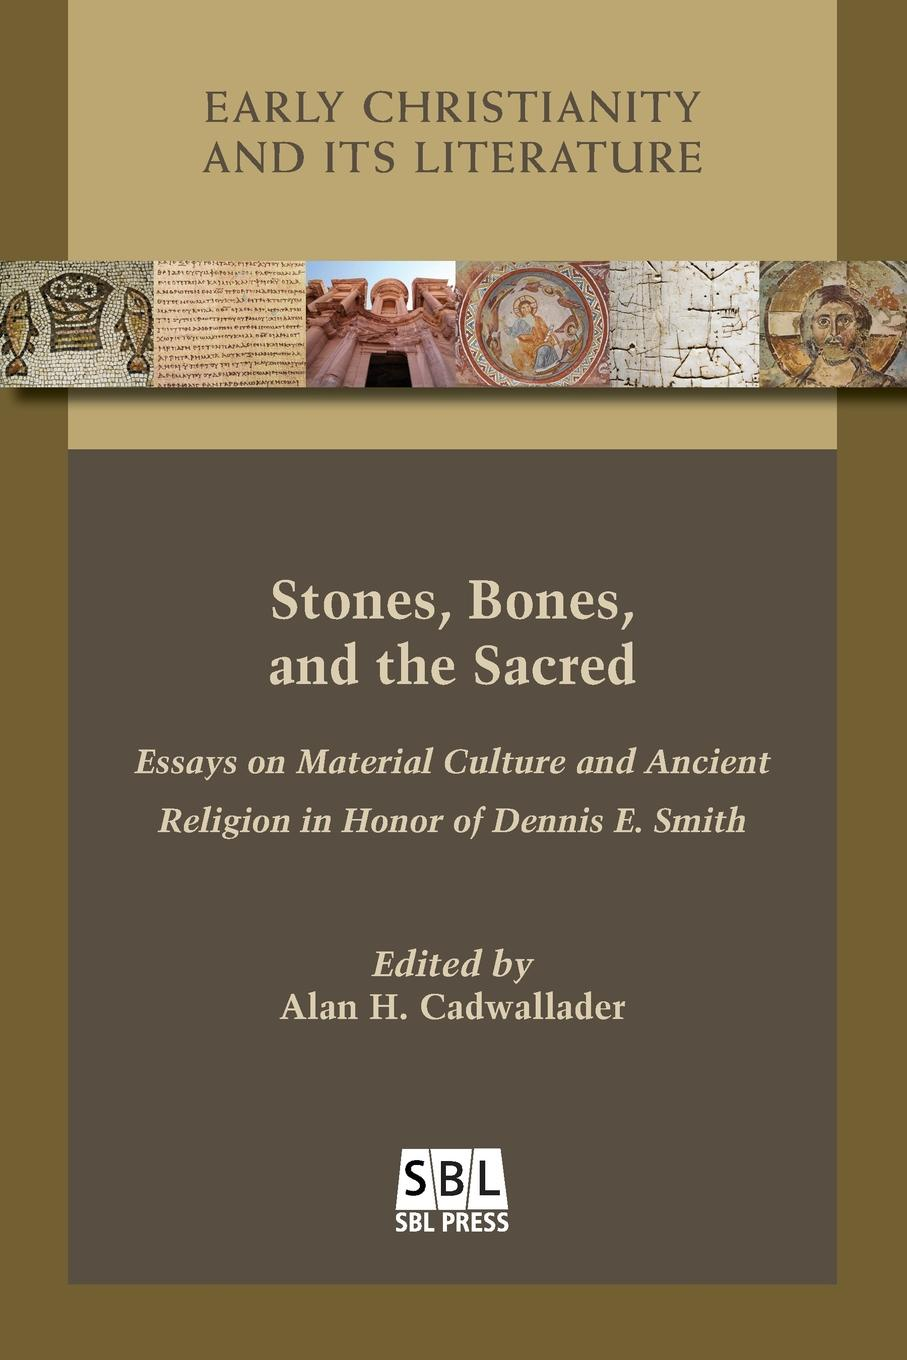 Stones, Bones, and the Sacred. Essays on Material Culture and Ancient Religion in Honor of Dennis E. Smith women backpack candy color transparent bag lovely ita bag cat ear pu leather backpacks women bags for schoolbags teenage girls